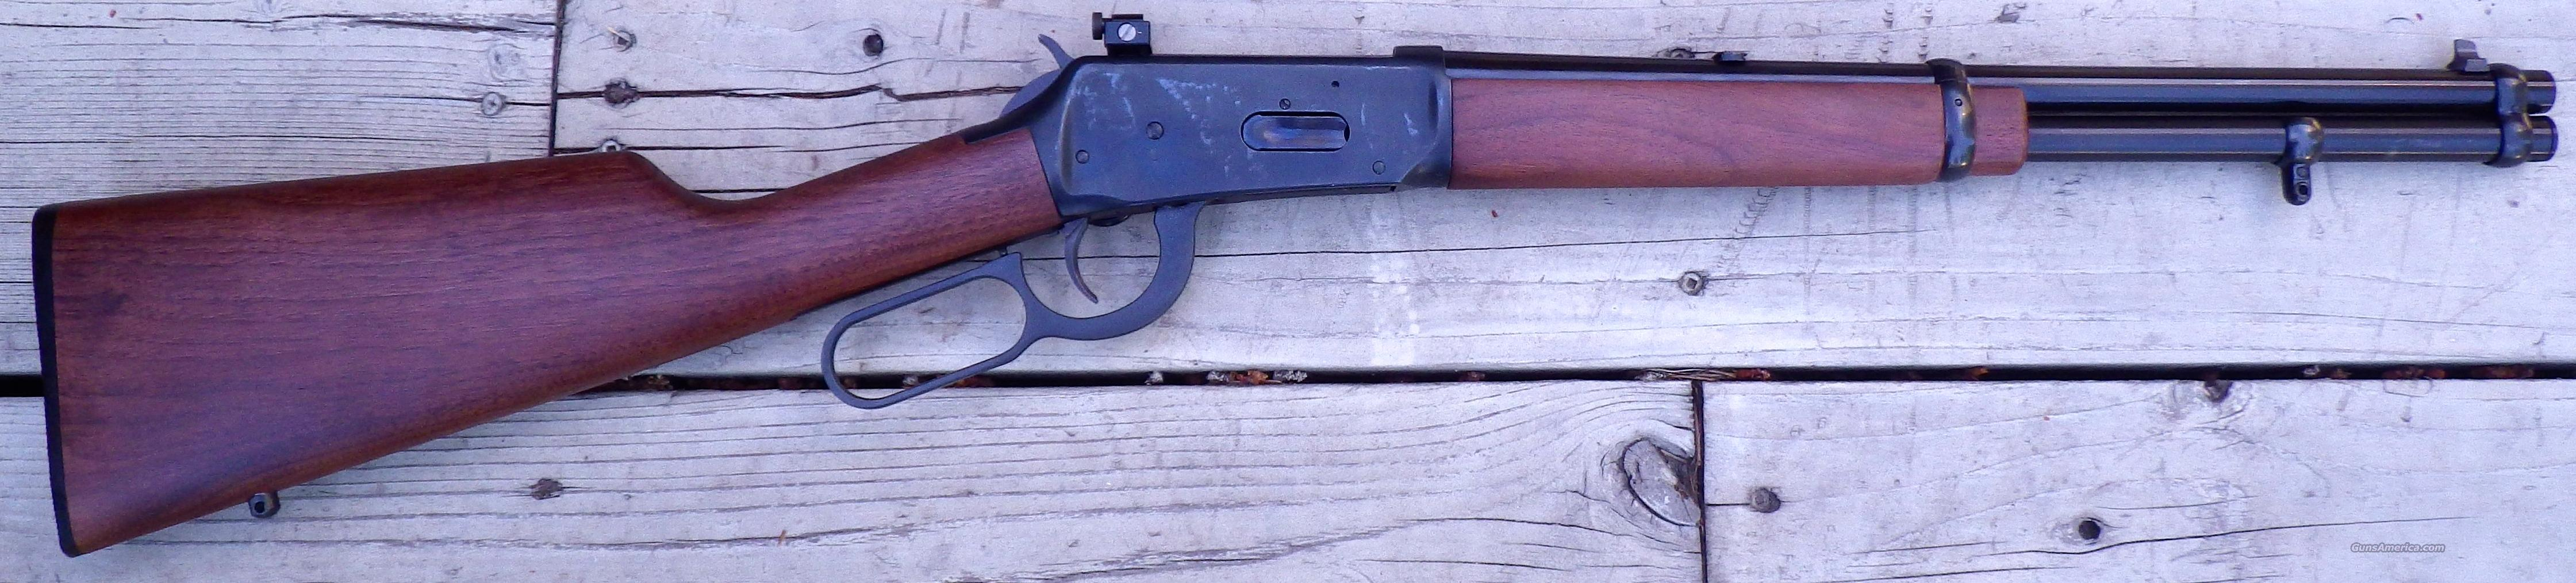 Winchester Model 94 30-30, 16-inch, top eject, saddle ring, 1980  Guns > Rifles > Winchester Rifles - Modern Lever > Model 94 > Post-64